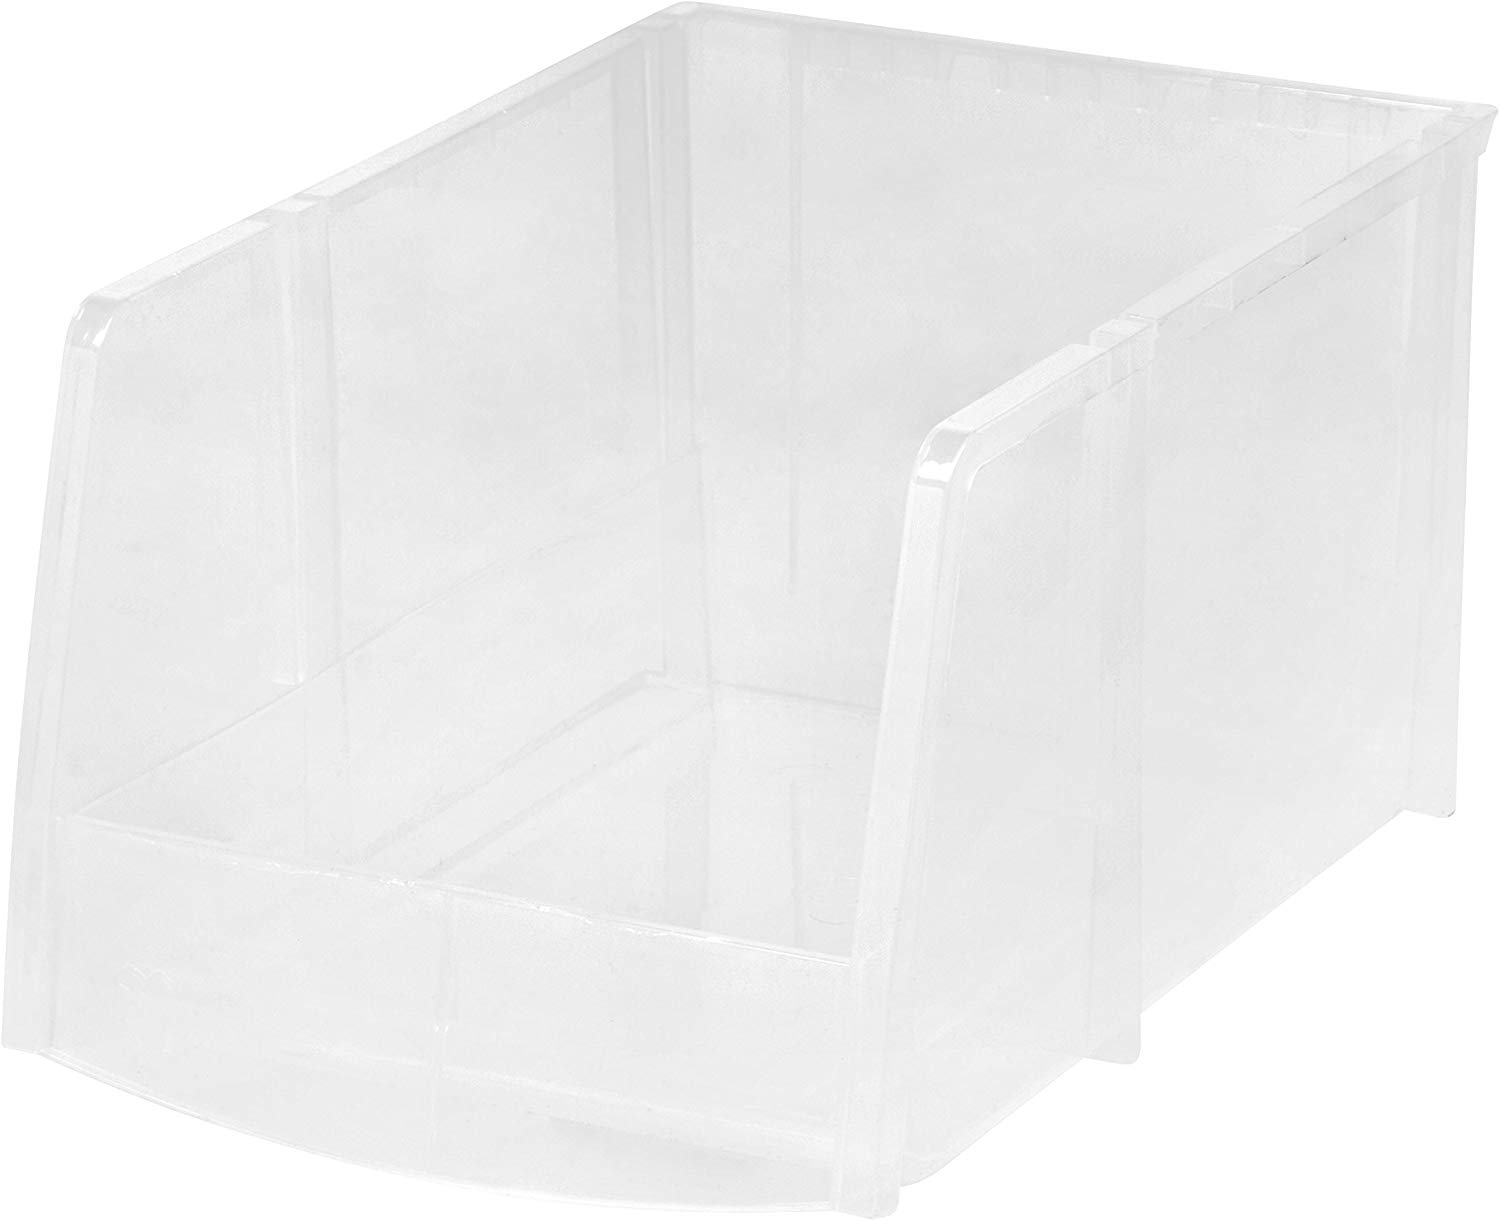 8 Inch x 14 Inch IP Clear Stacking Bin